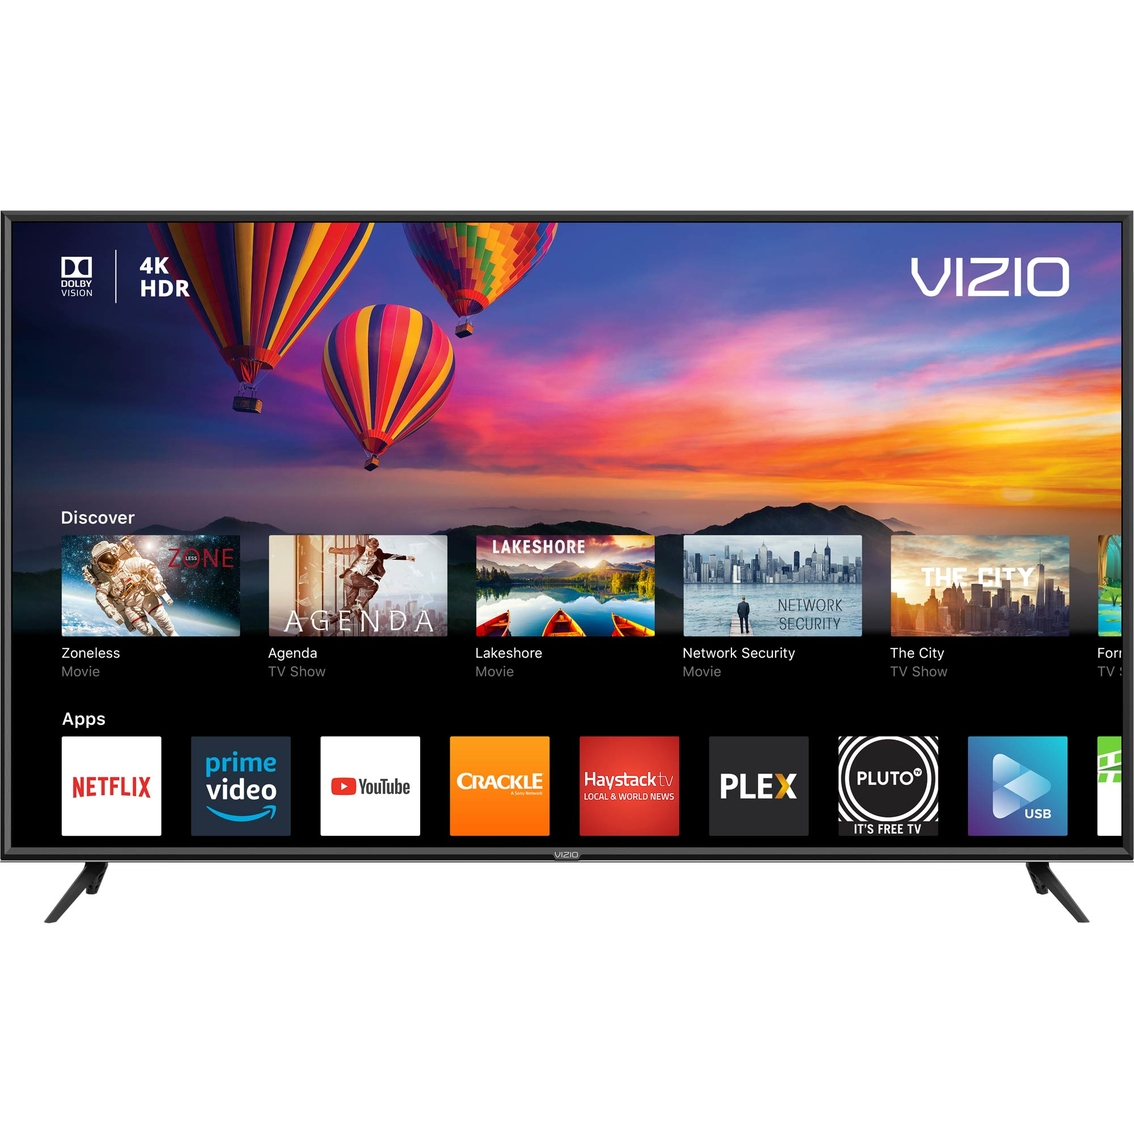 Vizio 50 in. 4K LED 120Hz HDR Smart TV E50-F2 In. 4k Led 120hz Hdr Tv E50-f2 | Tvs Electronics